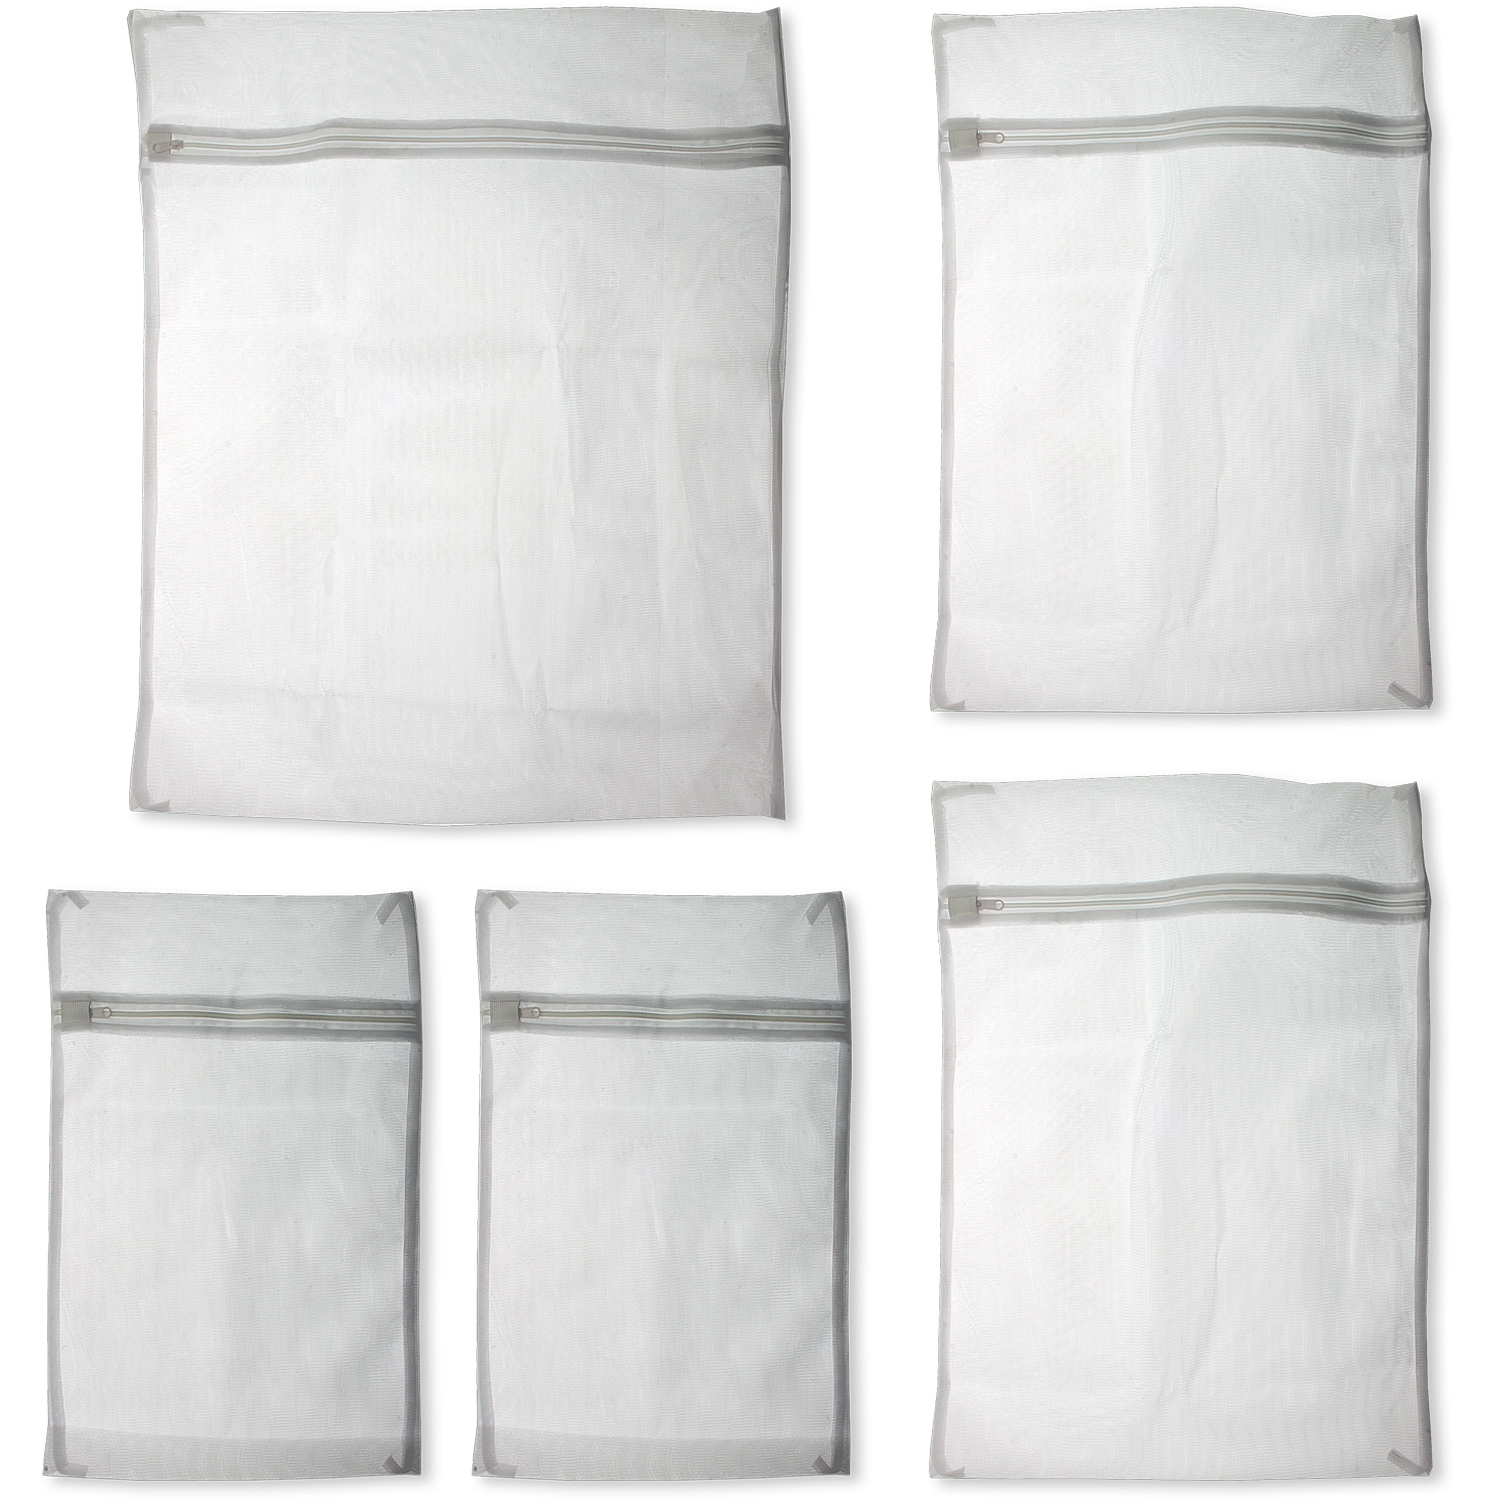 Zipped Mesh Laundry Bags Washing Net Wash Bags Underwear Clothes Socks Lingerie